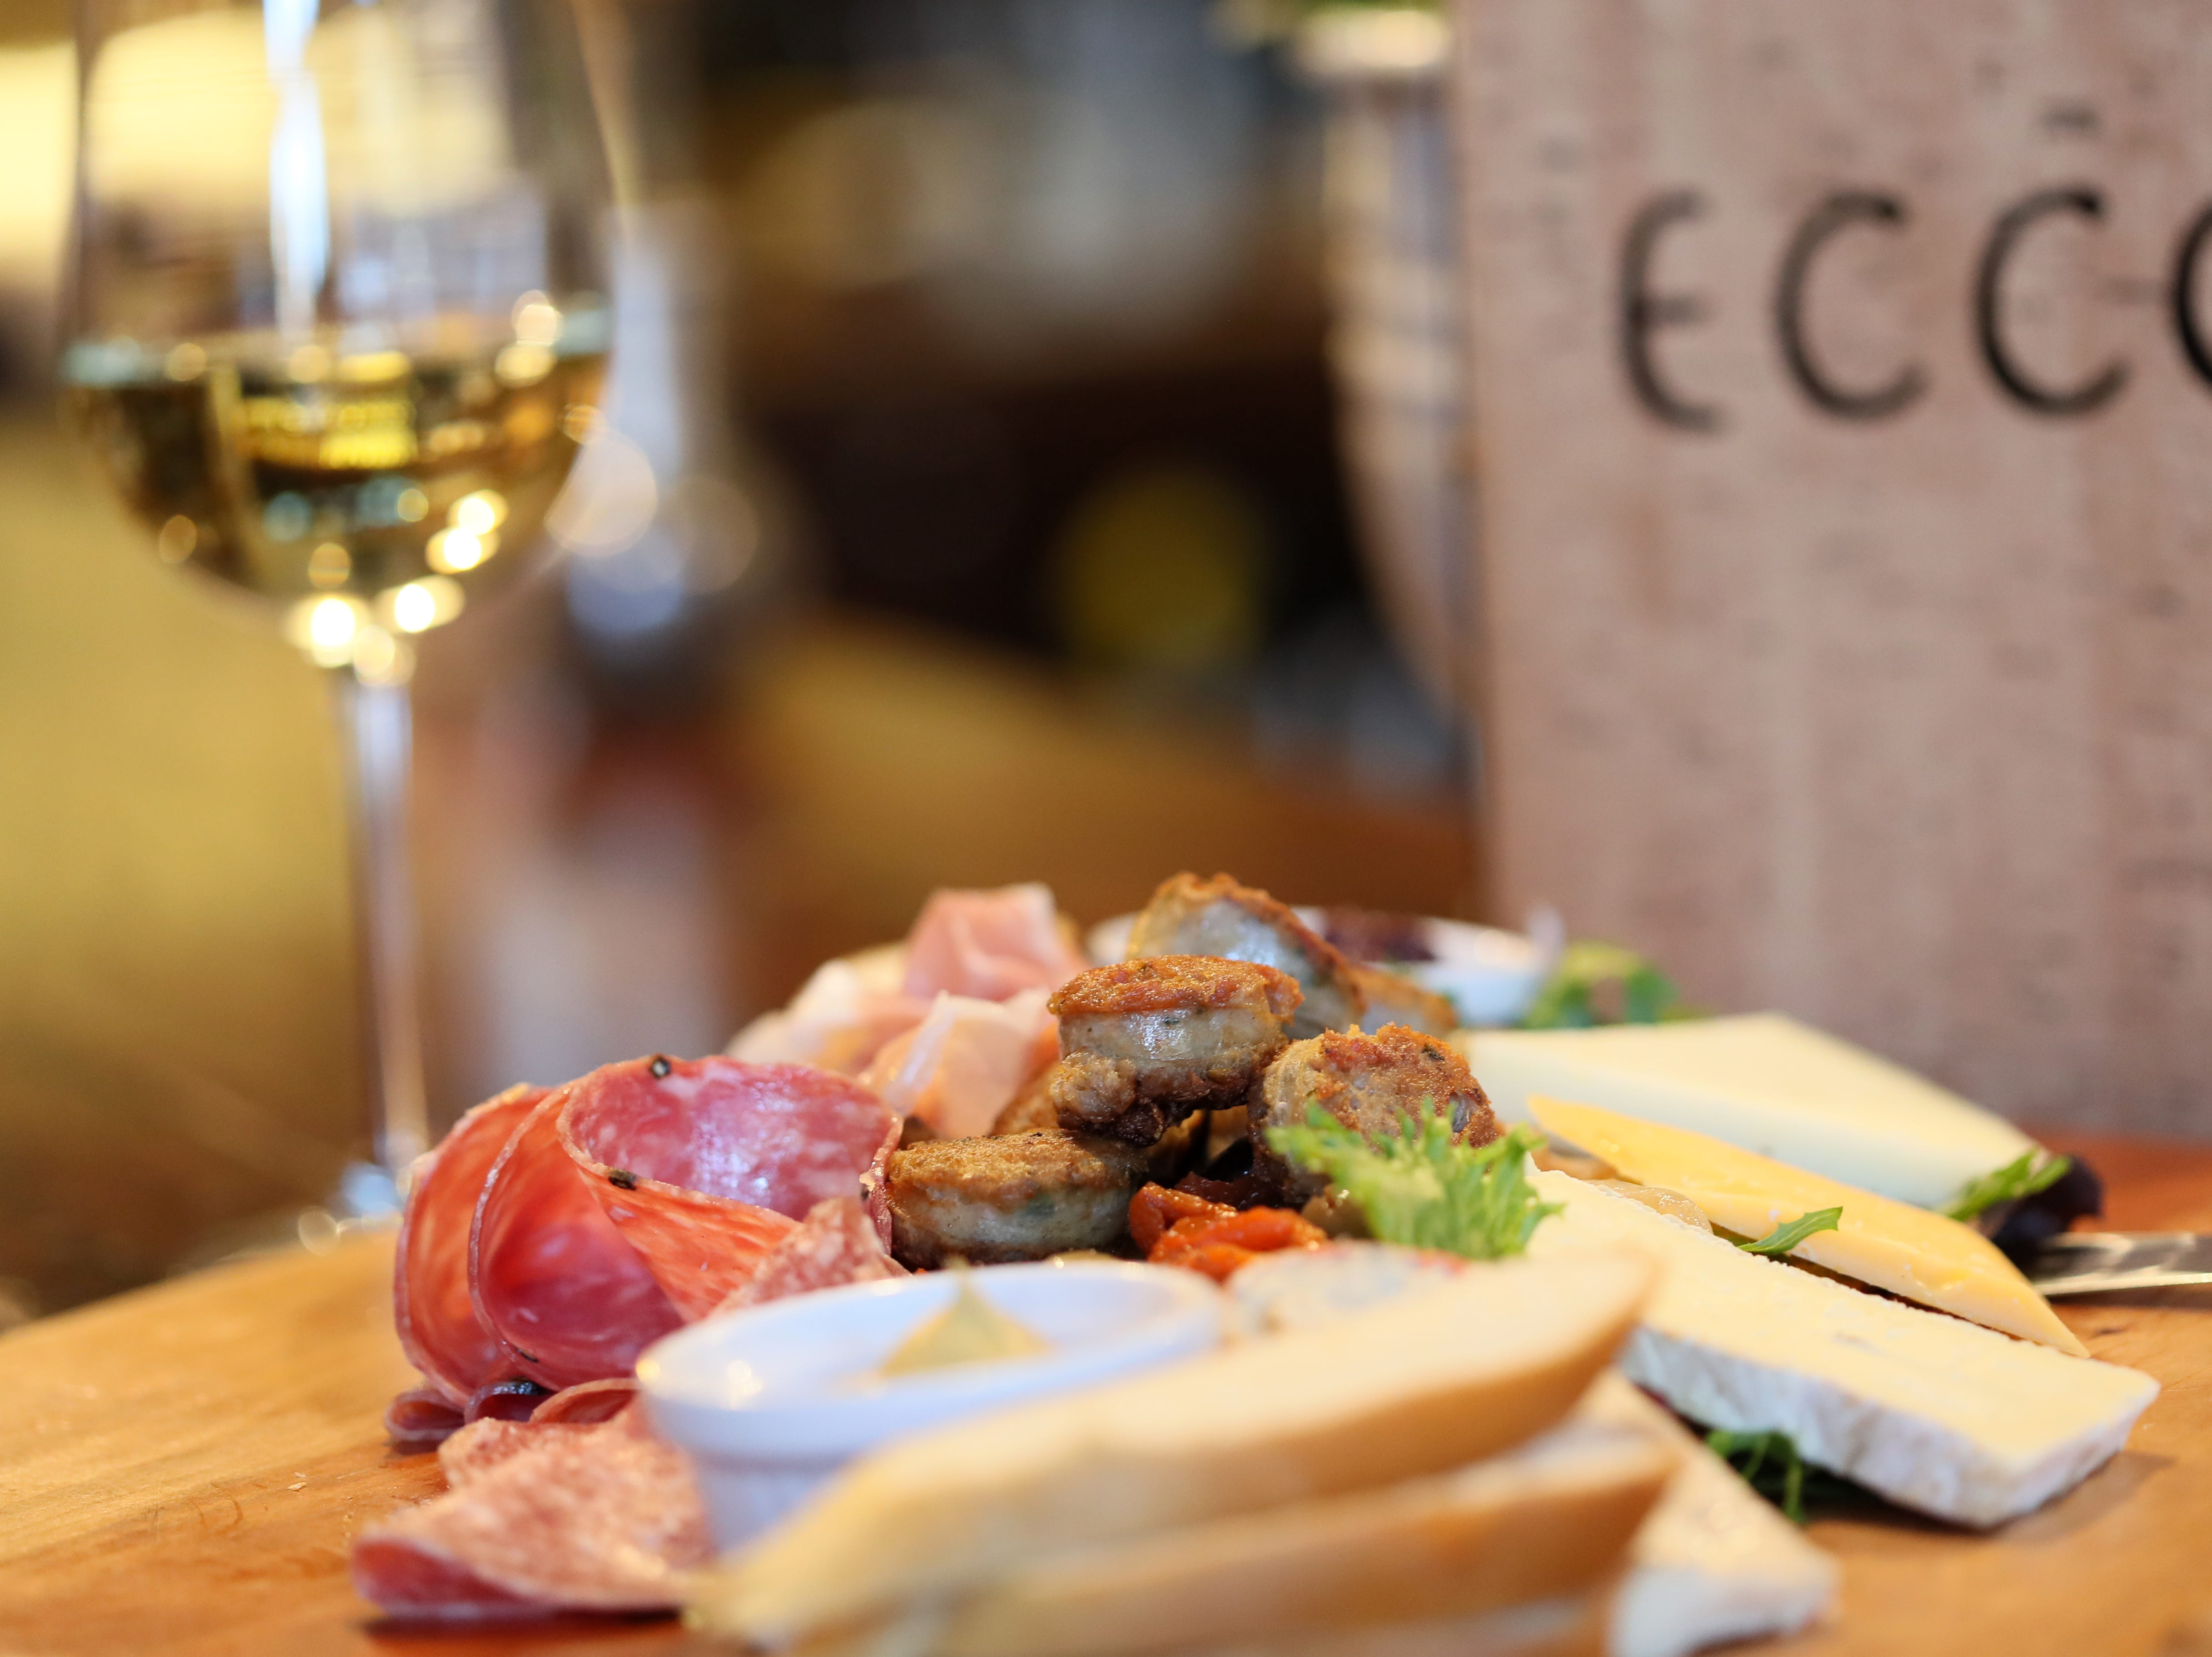 Charcuterie board with house-made Italian fennel sausage, an assortment of cured meats, and a variety of cheeses including manchego, taleggio, and cambazola at Ecco Restaurant in Midtown's Evergreen Historic District.